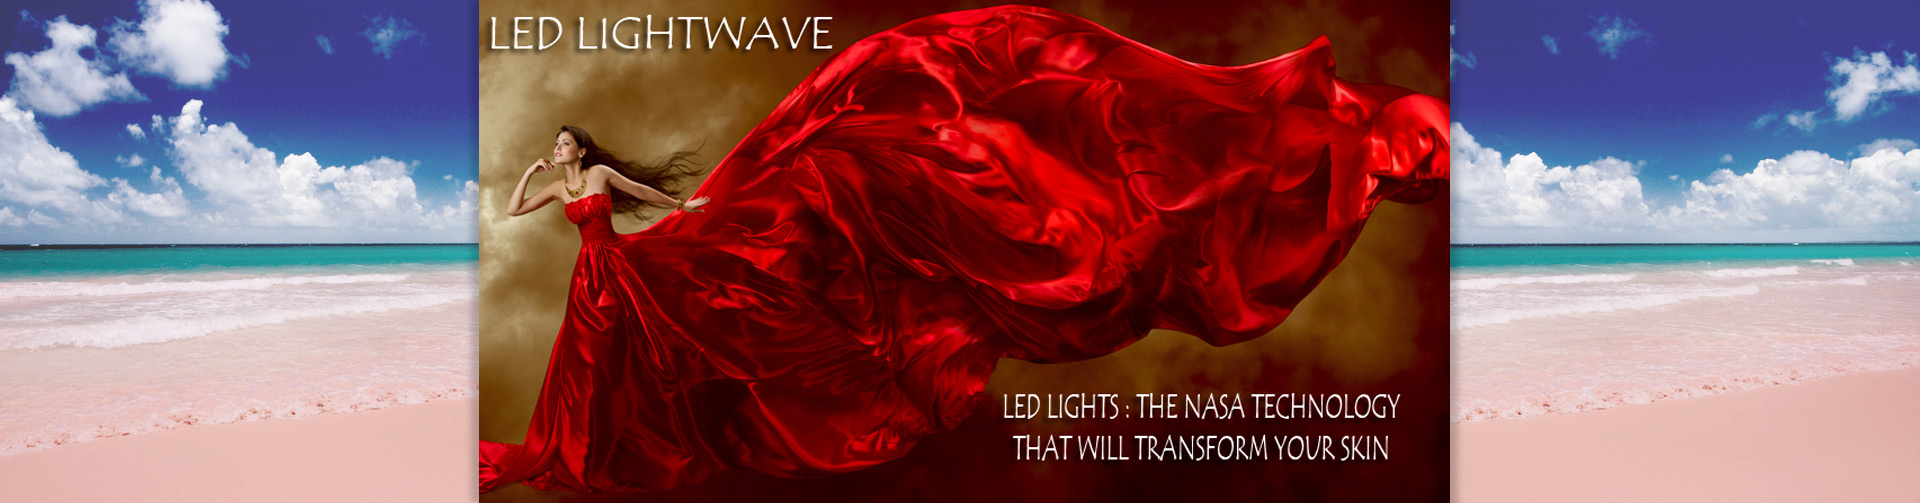 LED LIGHTWAVE